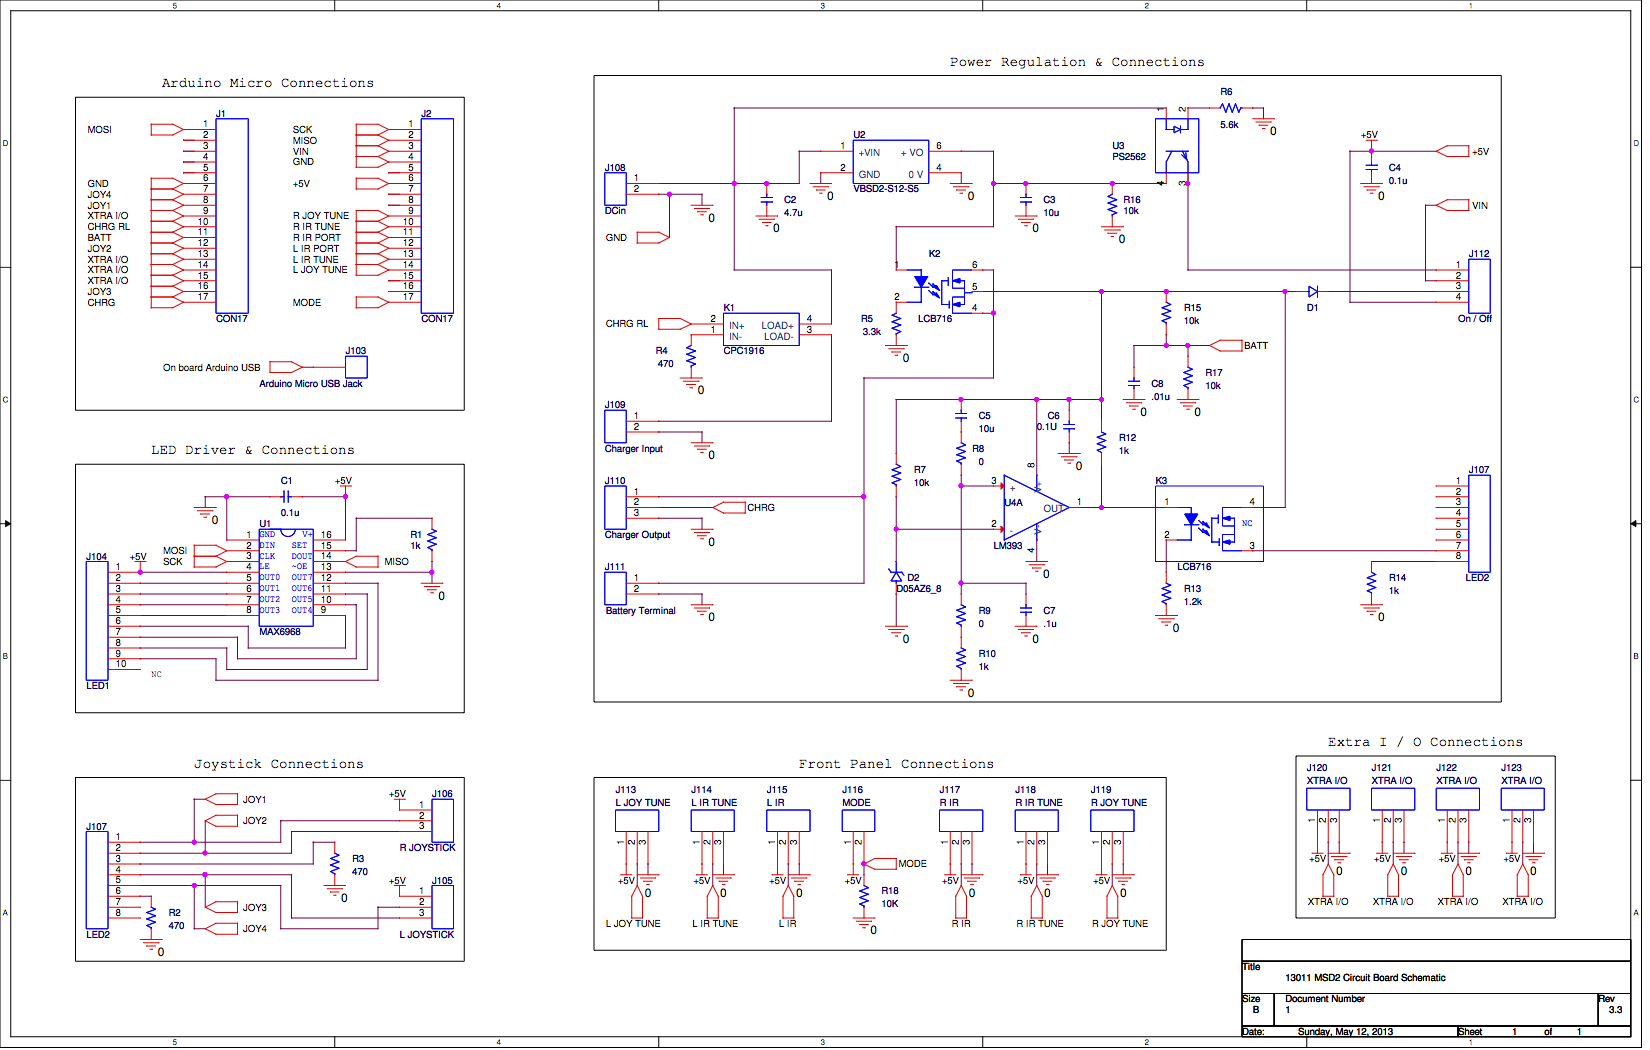 public/DetailedDesign/Images/Electrical_Design_images/CircuitBoardSchematic.png